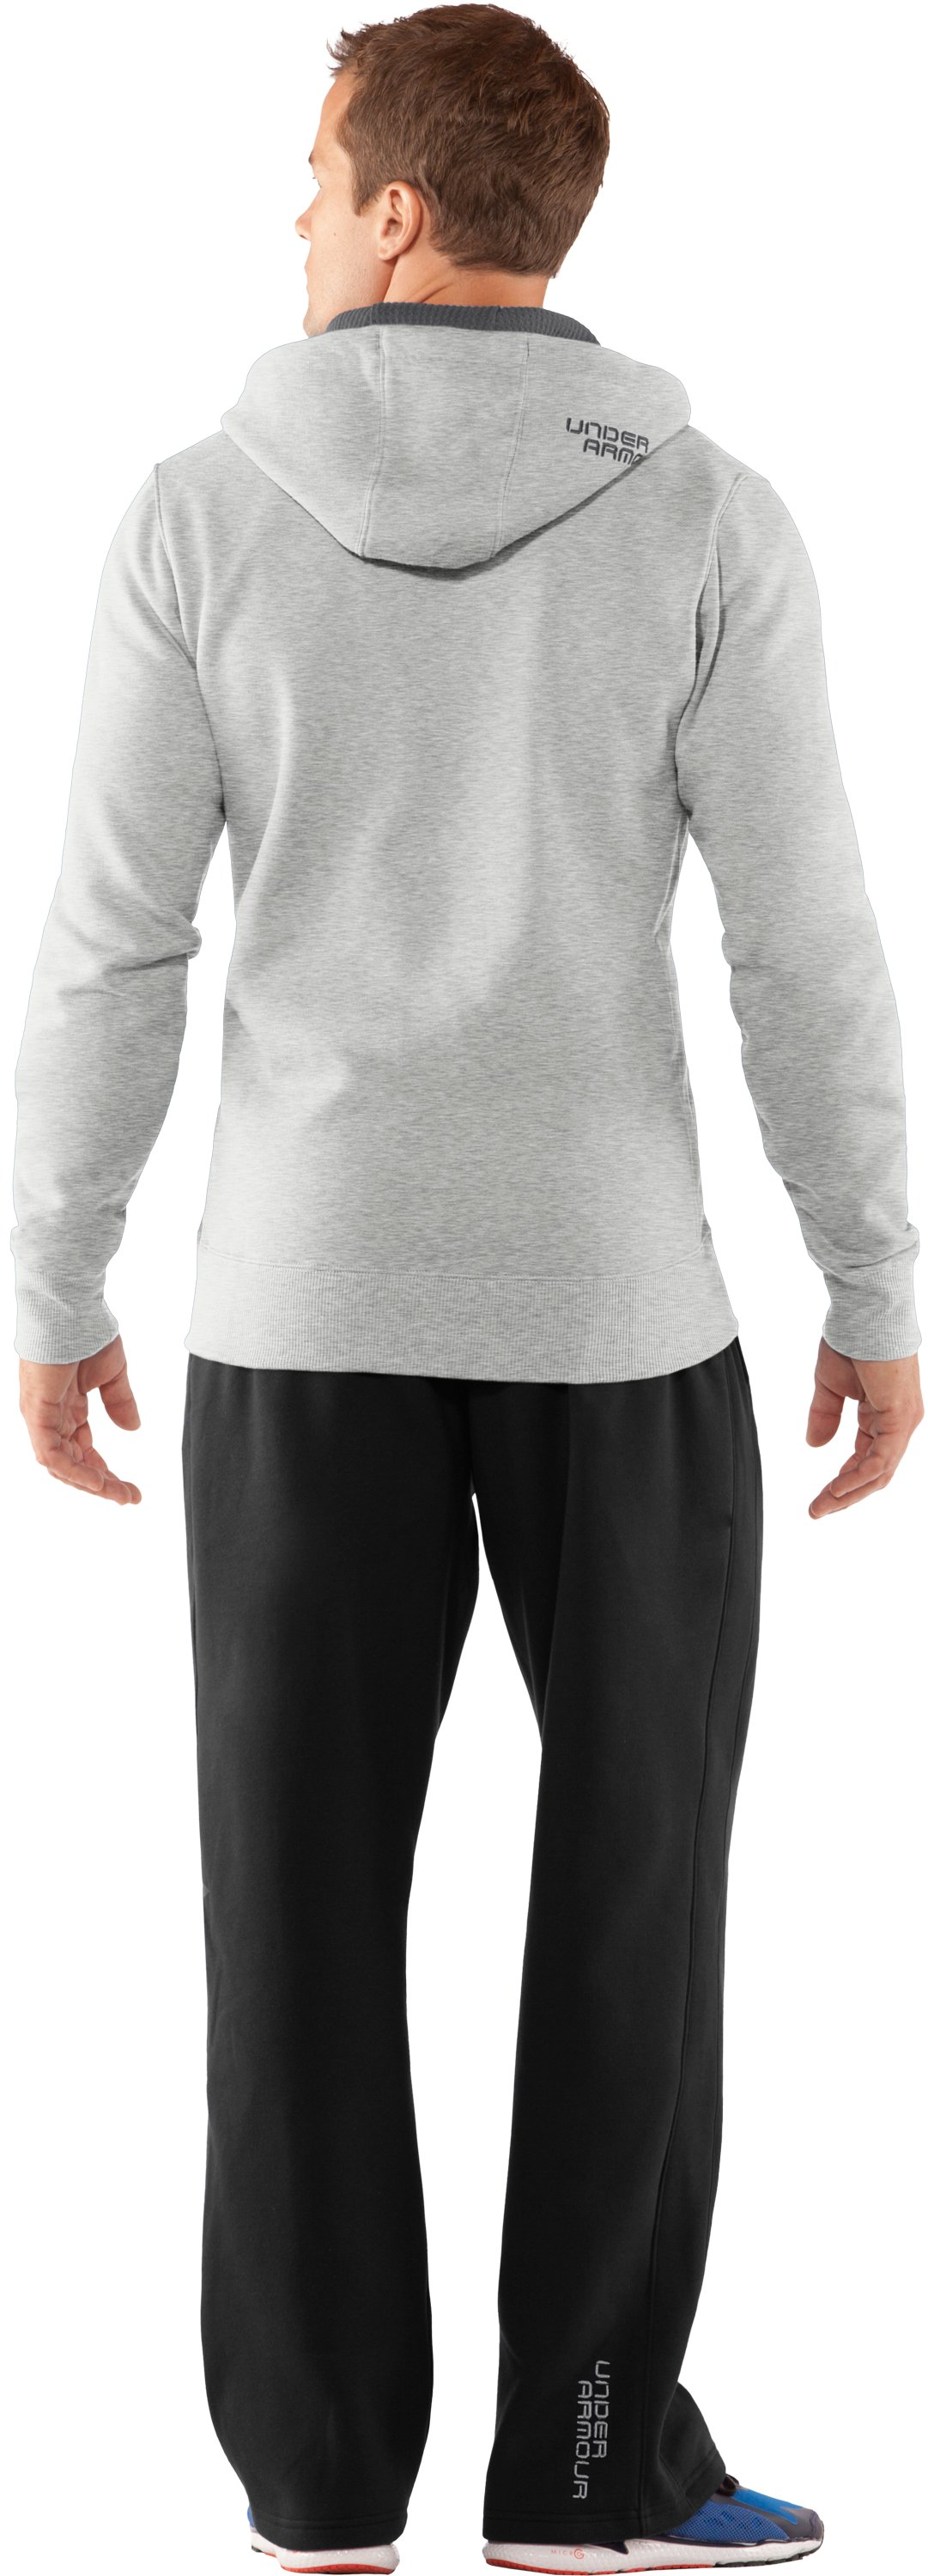 Men's Charged Cotton® Storm Full Zip Hoodie, Silver Heather, Back